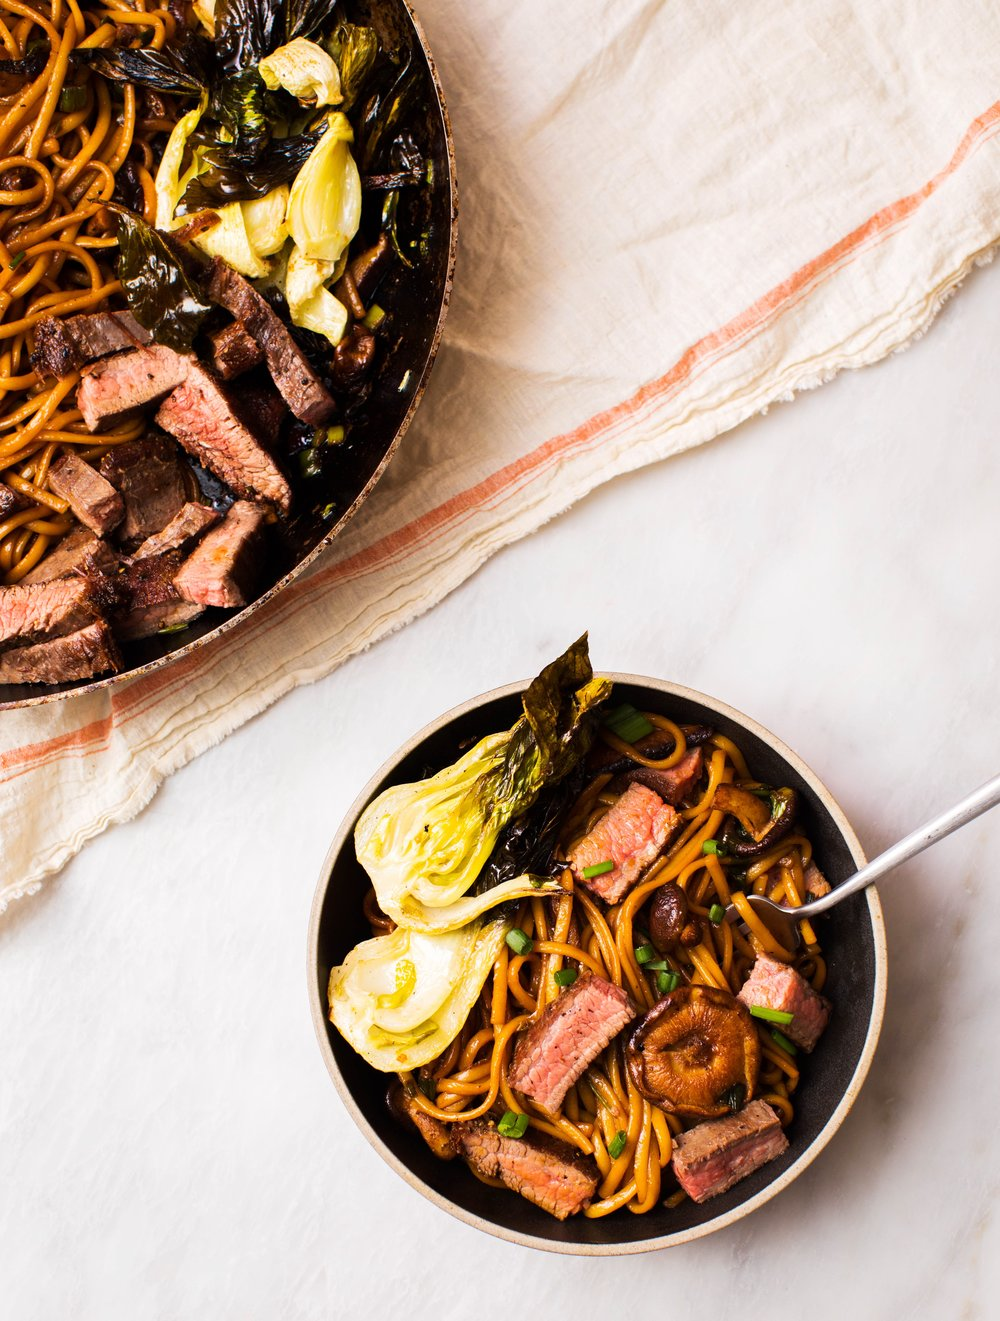 Cut the steak into bite-sized cubes before tossing with the noodles. -